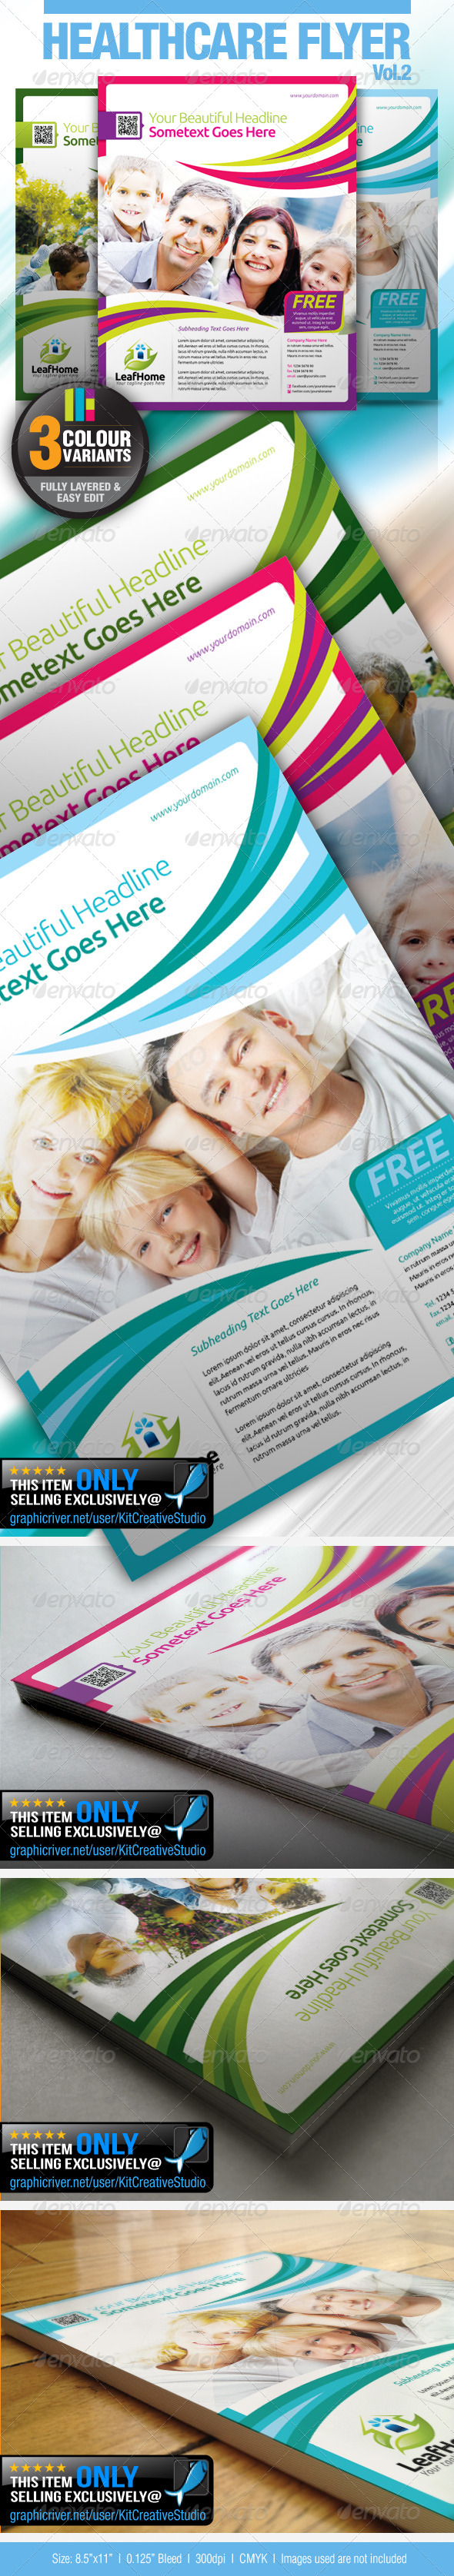 Healthcare Flyer Vol.2 - Corporate Flyers